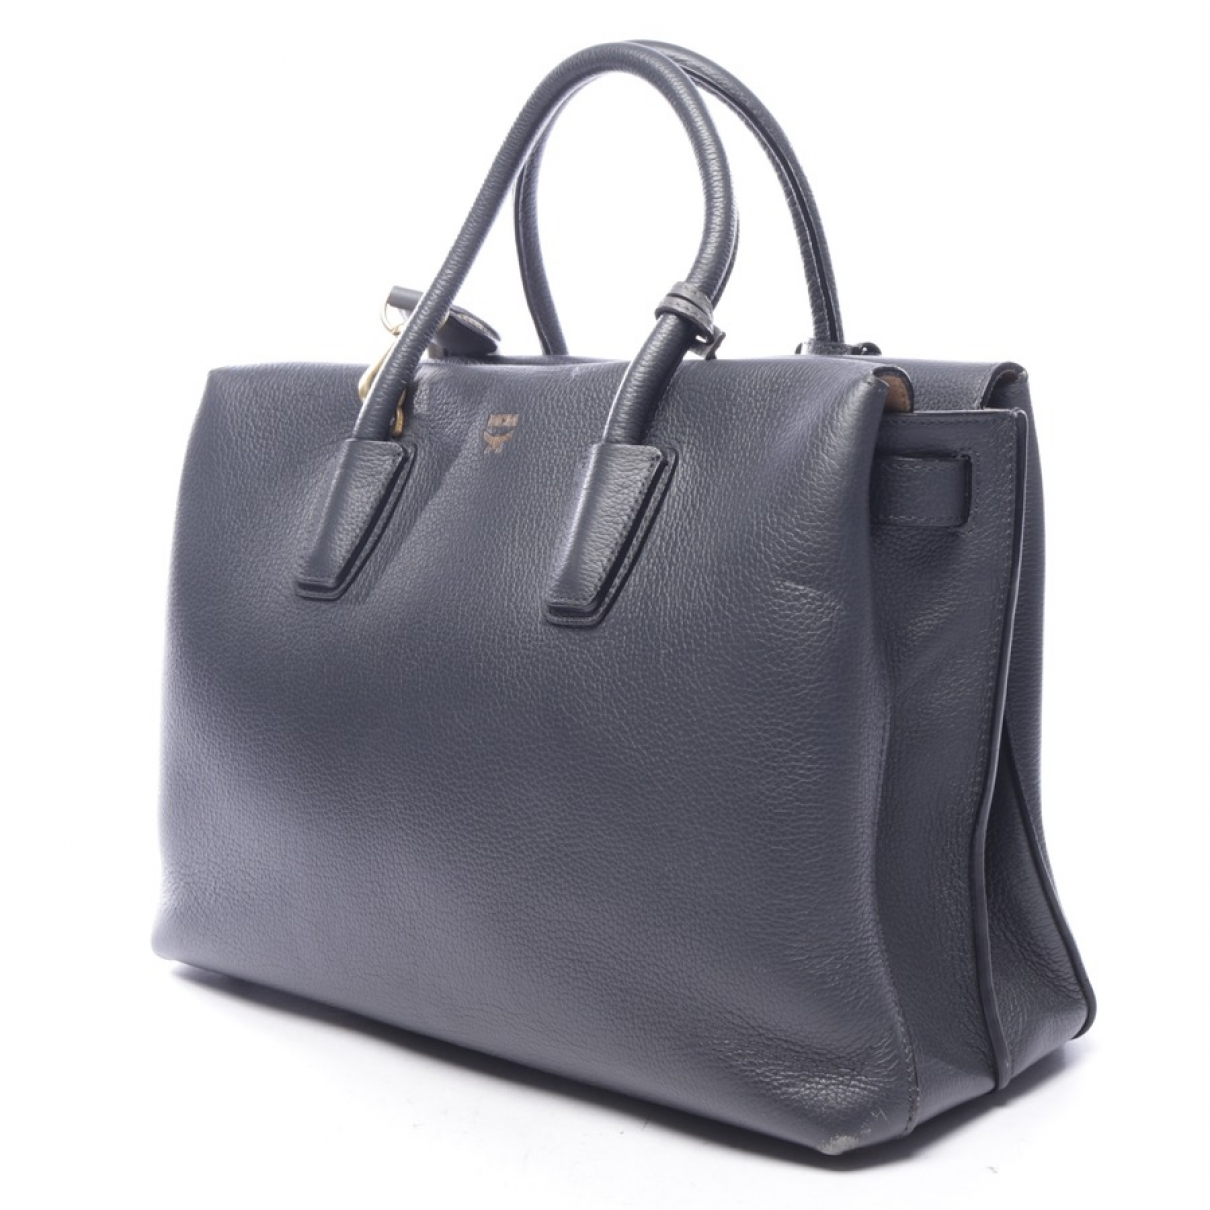 Mcm \N Blue Leather handbag for Women \N